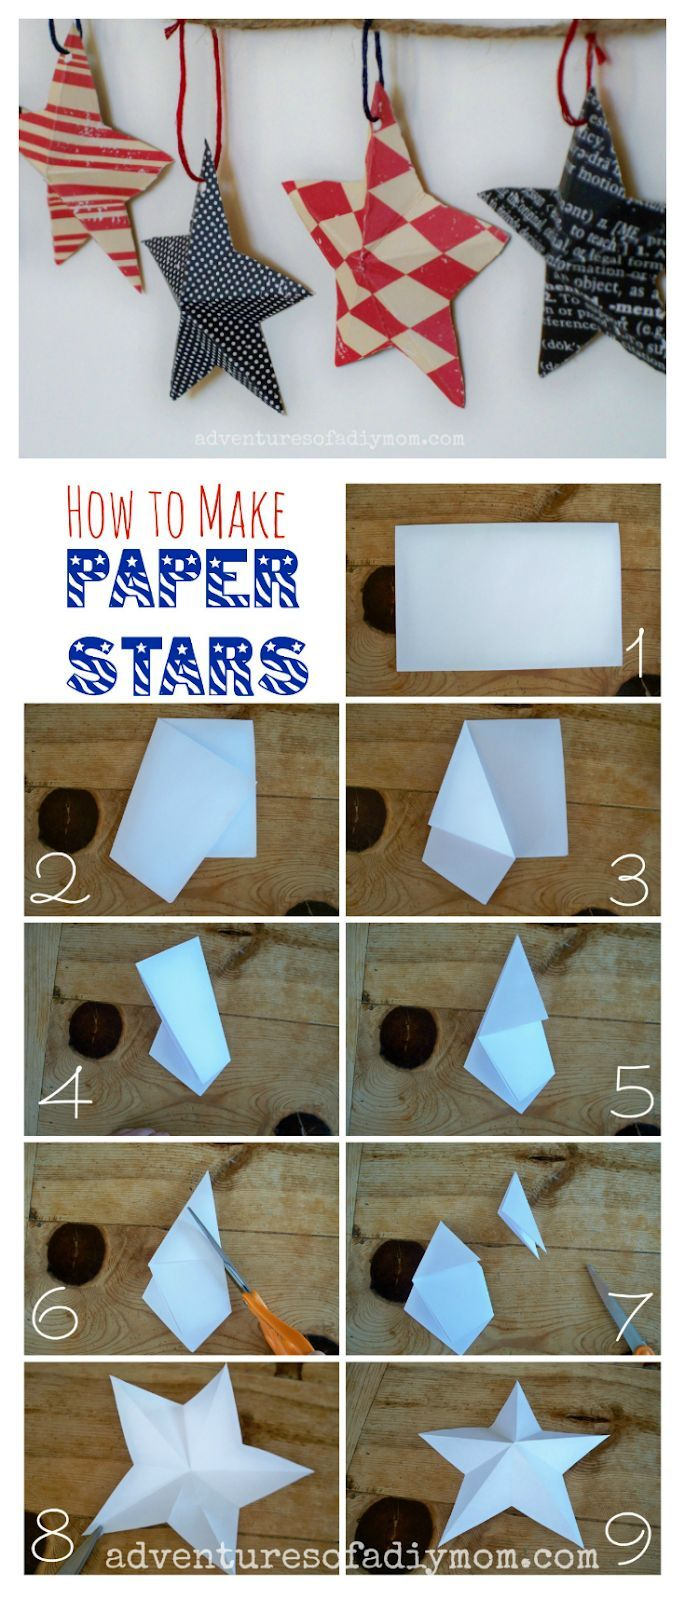 How to make Simple 3D Paper Stars - DIY Paper Crafts - YouTube | 1600x685